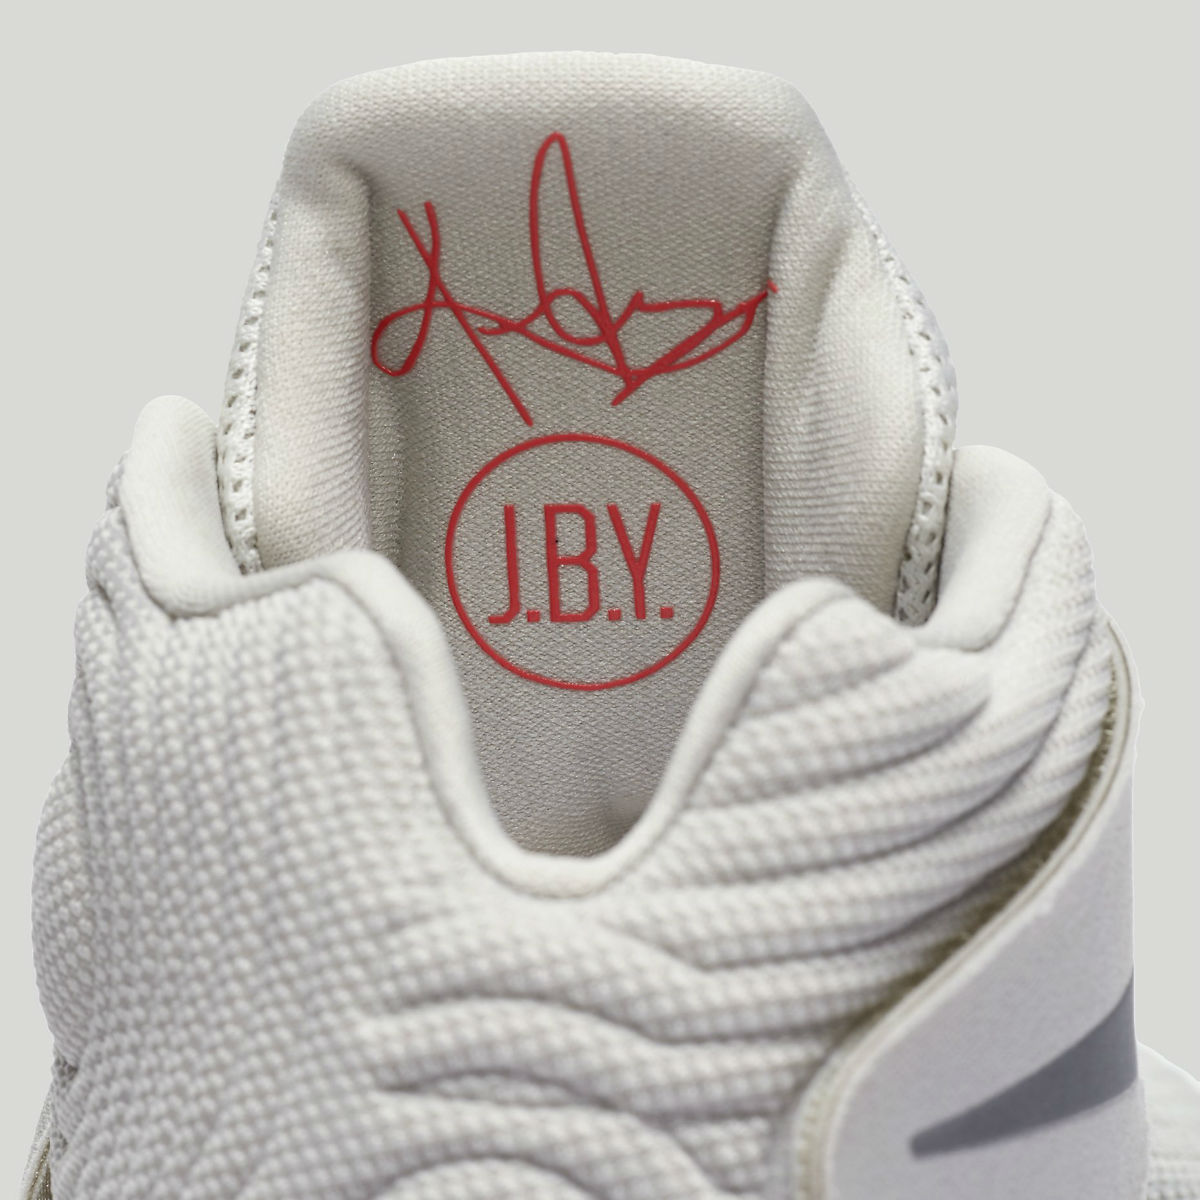 sale retailer 63ccc 9b499 Nike Kyrie 2 Summer Pack Tongue 819583-001